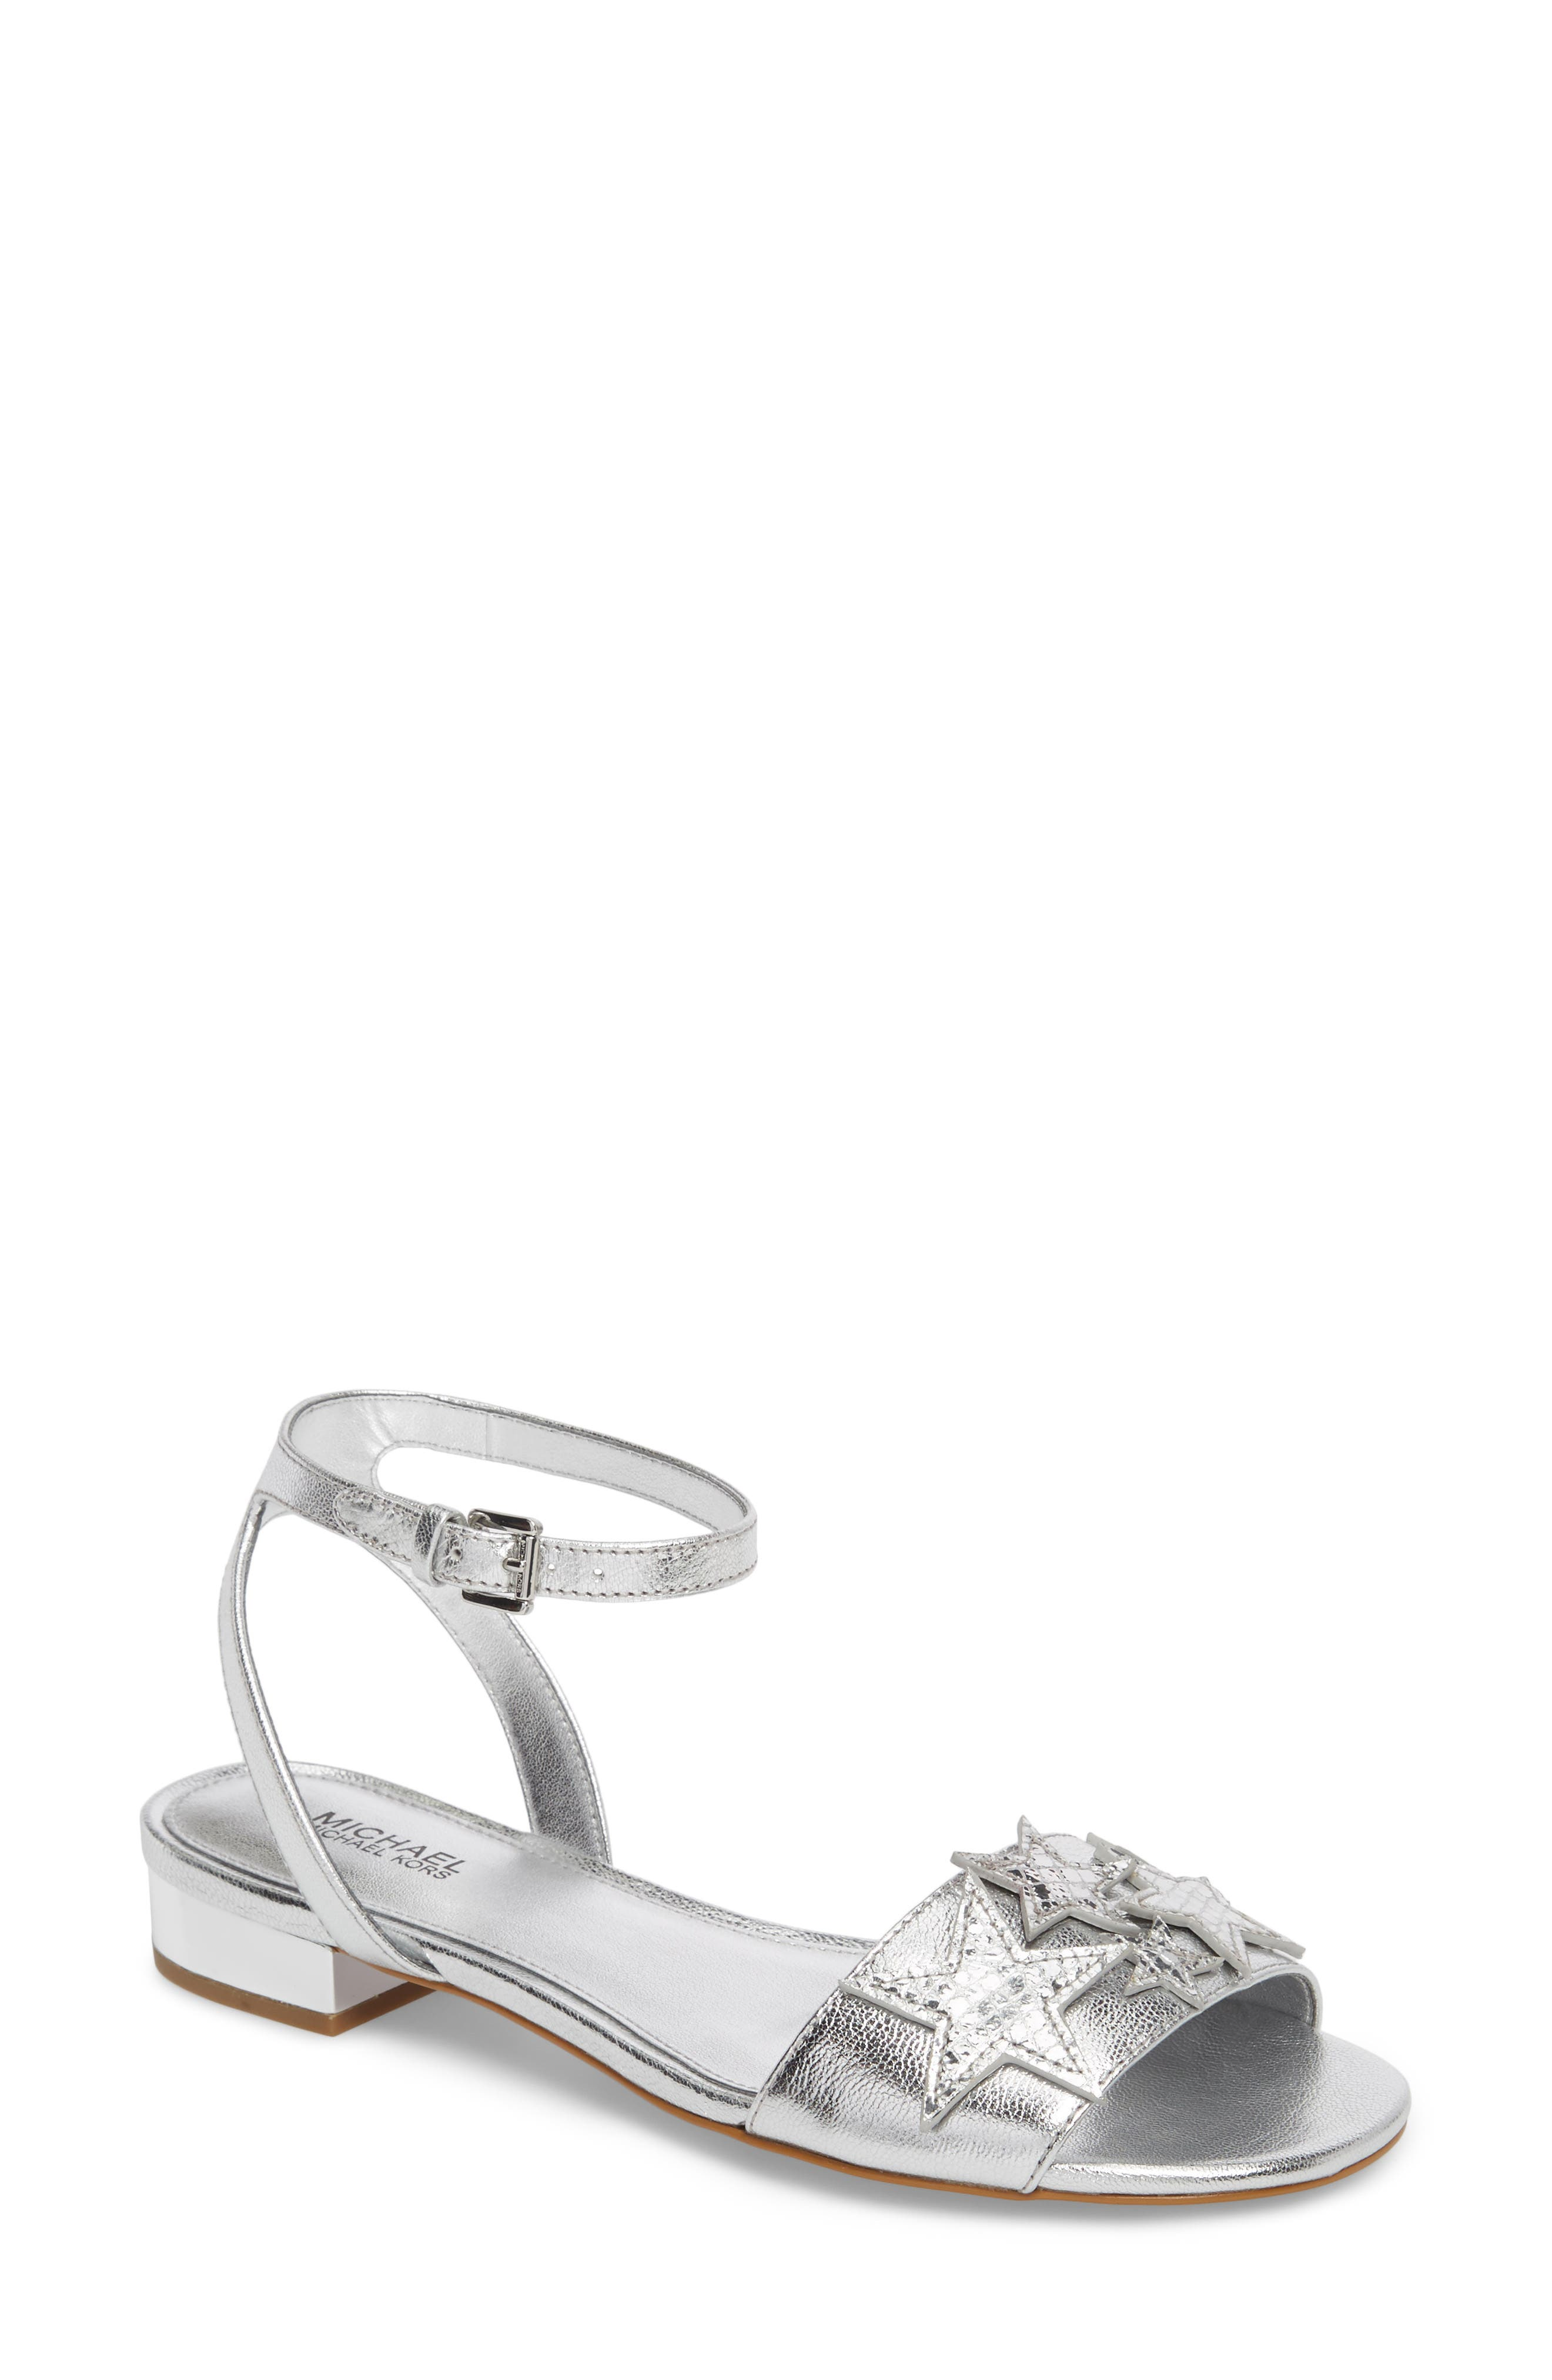 Lexie Star Embellished Sandal,                         Main,                         color, Silver Nappa Leather